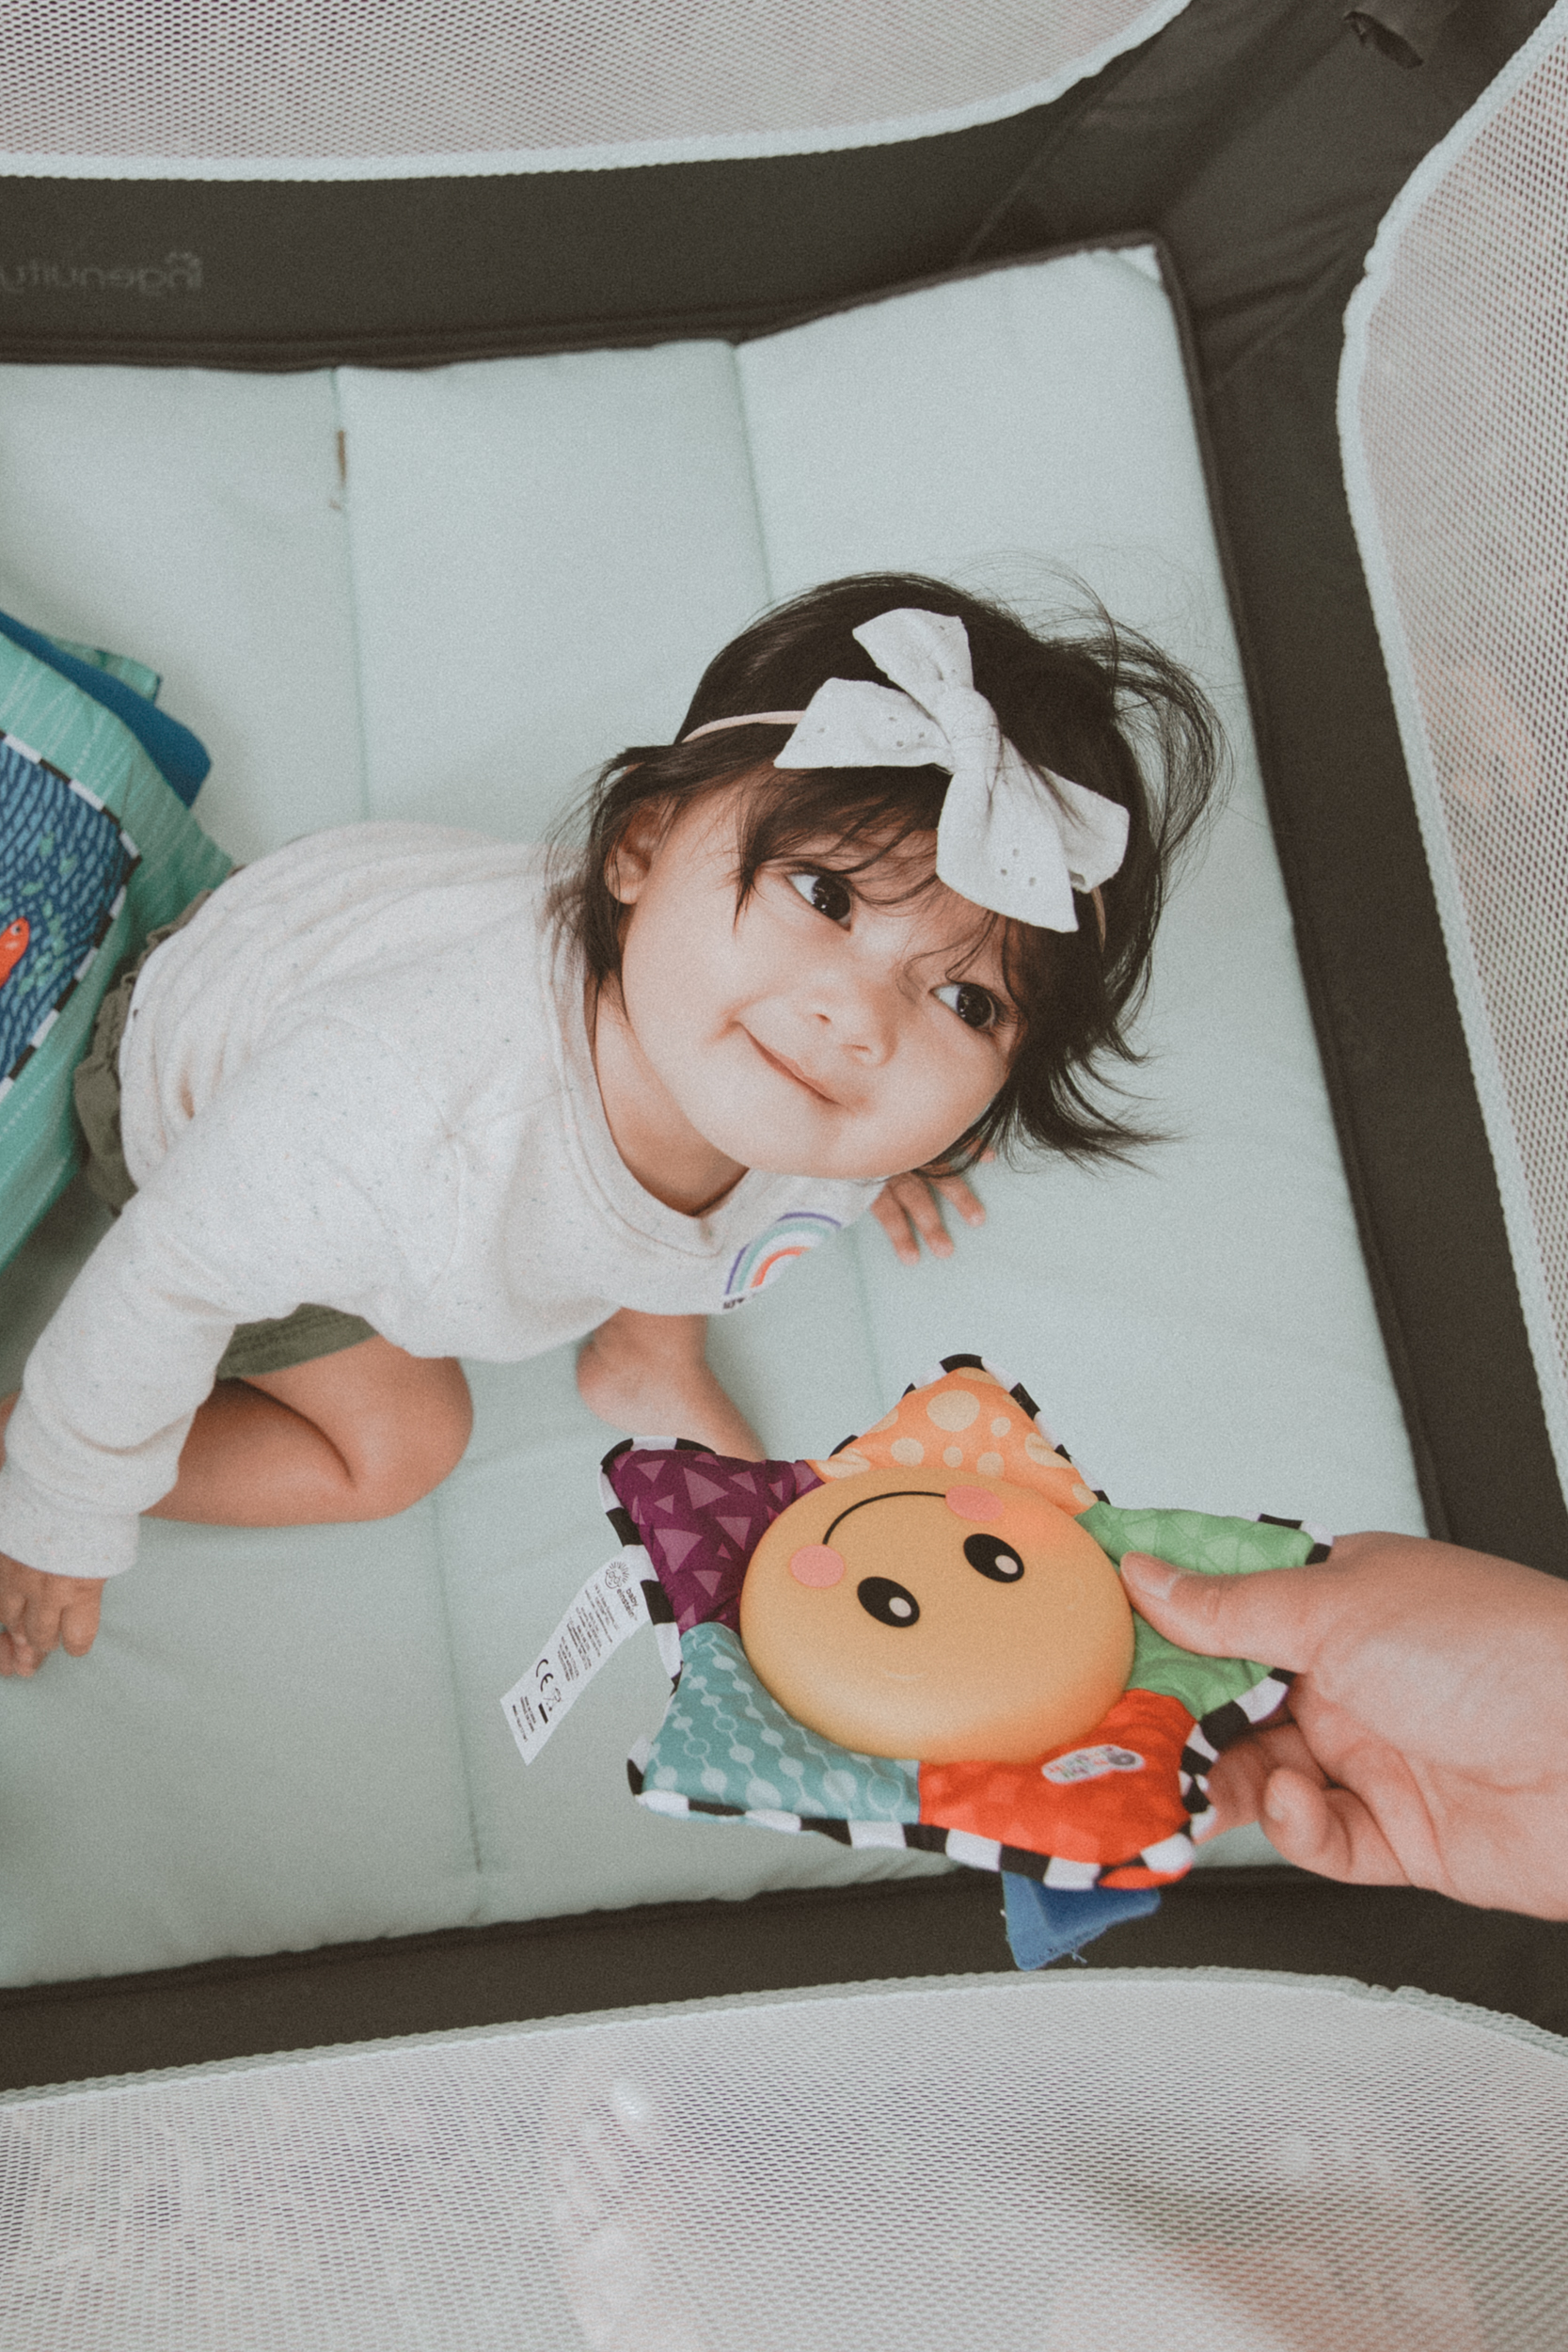 Kids2 - Best Place to Buy Baby Toys and Baby Gear